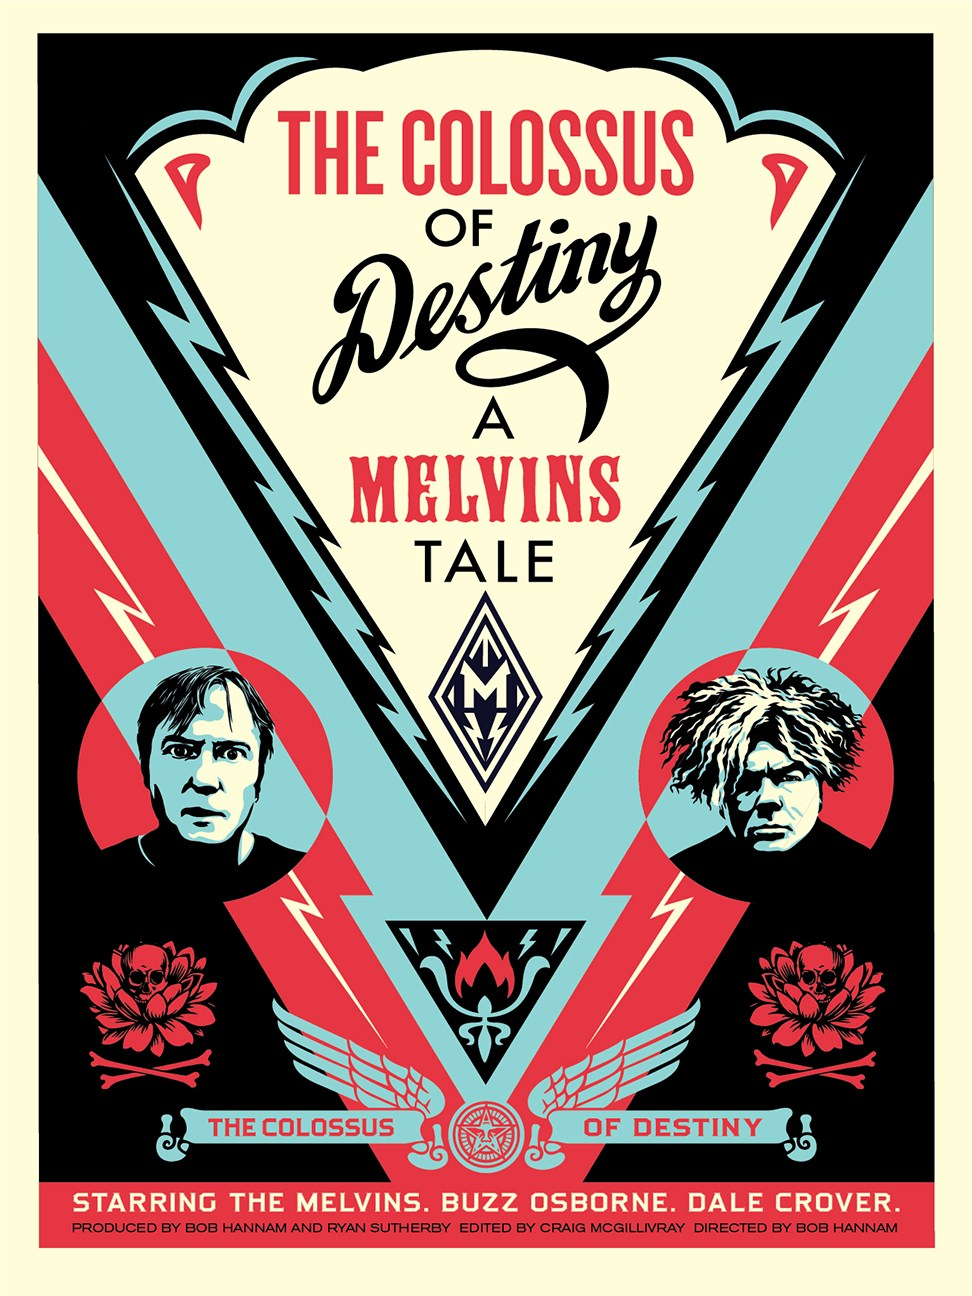 INSIDE THE ROCK POSTER FRAME BLOG: Shepard Fairey The Colossus of ...